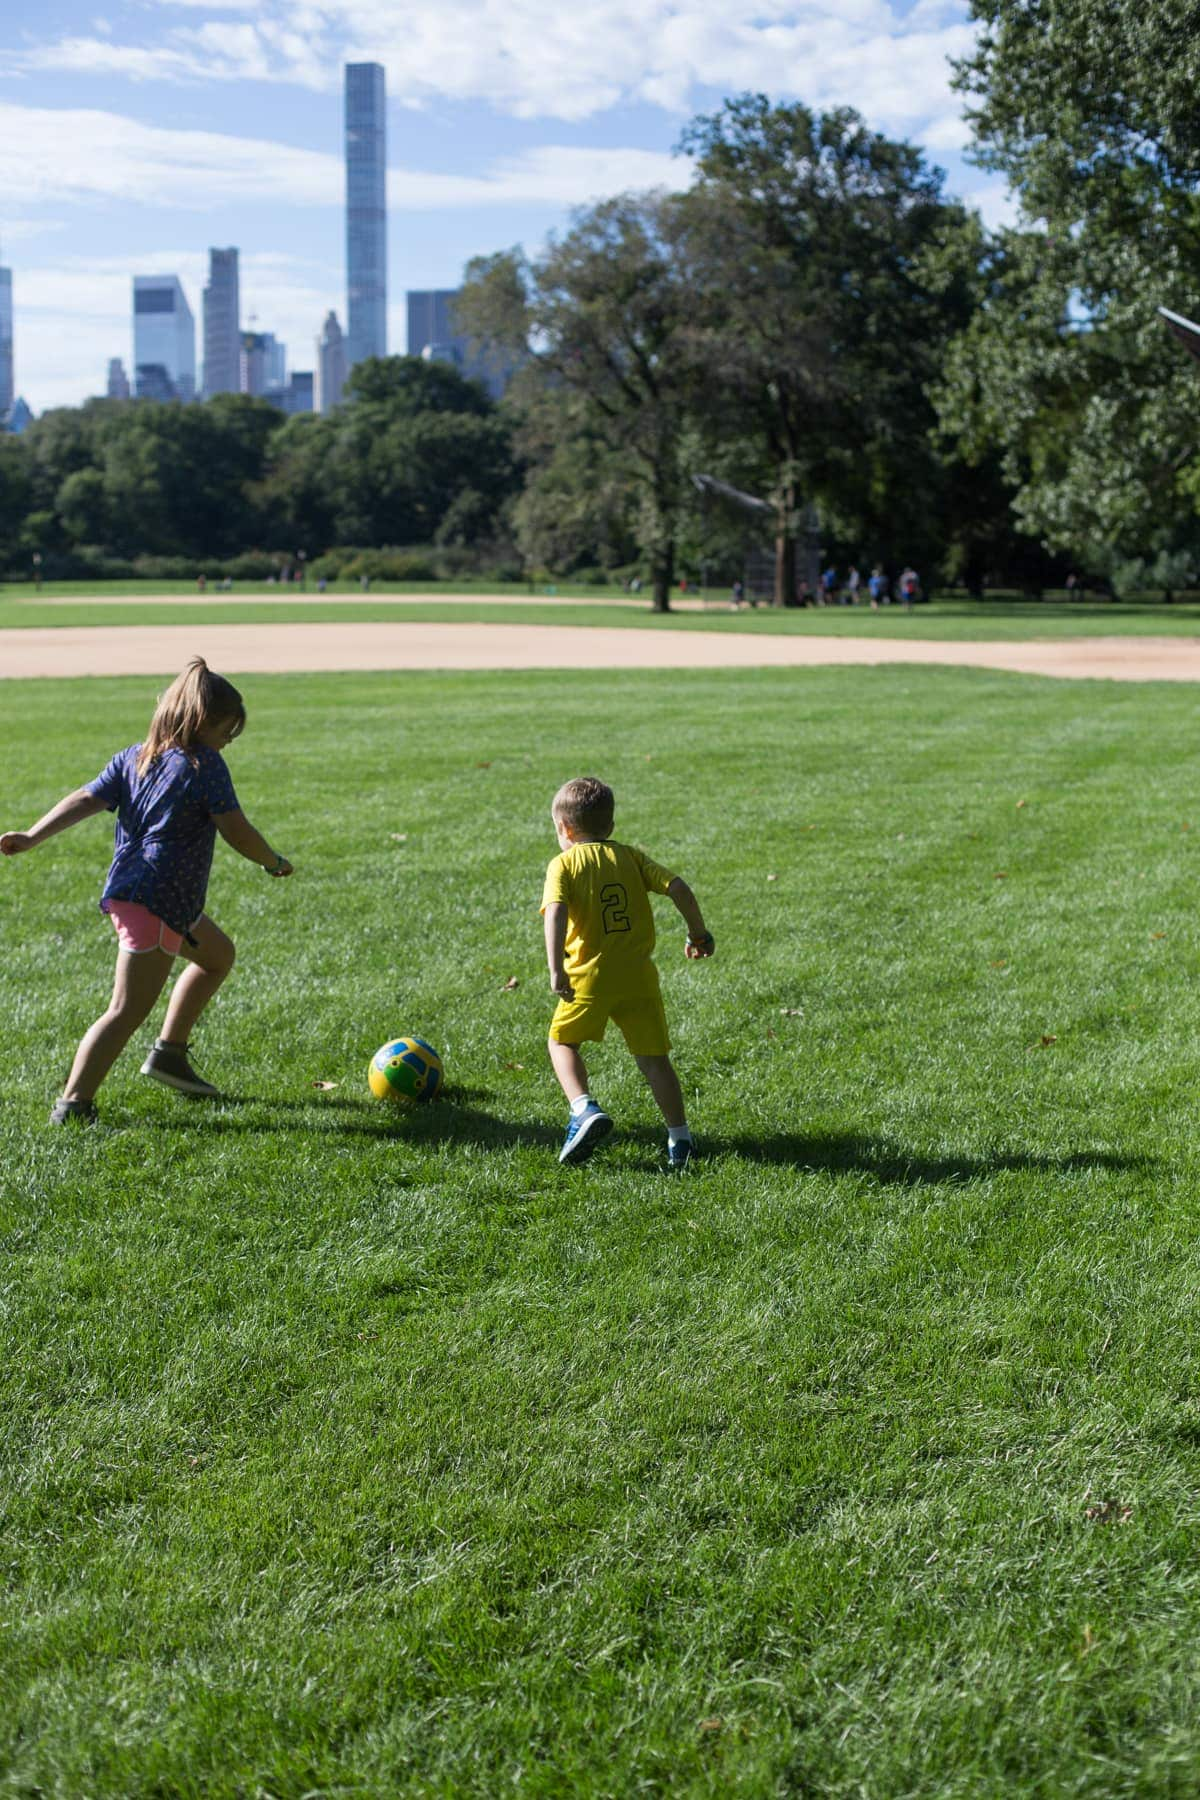 Brooke and Blake playing ball in a field